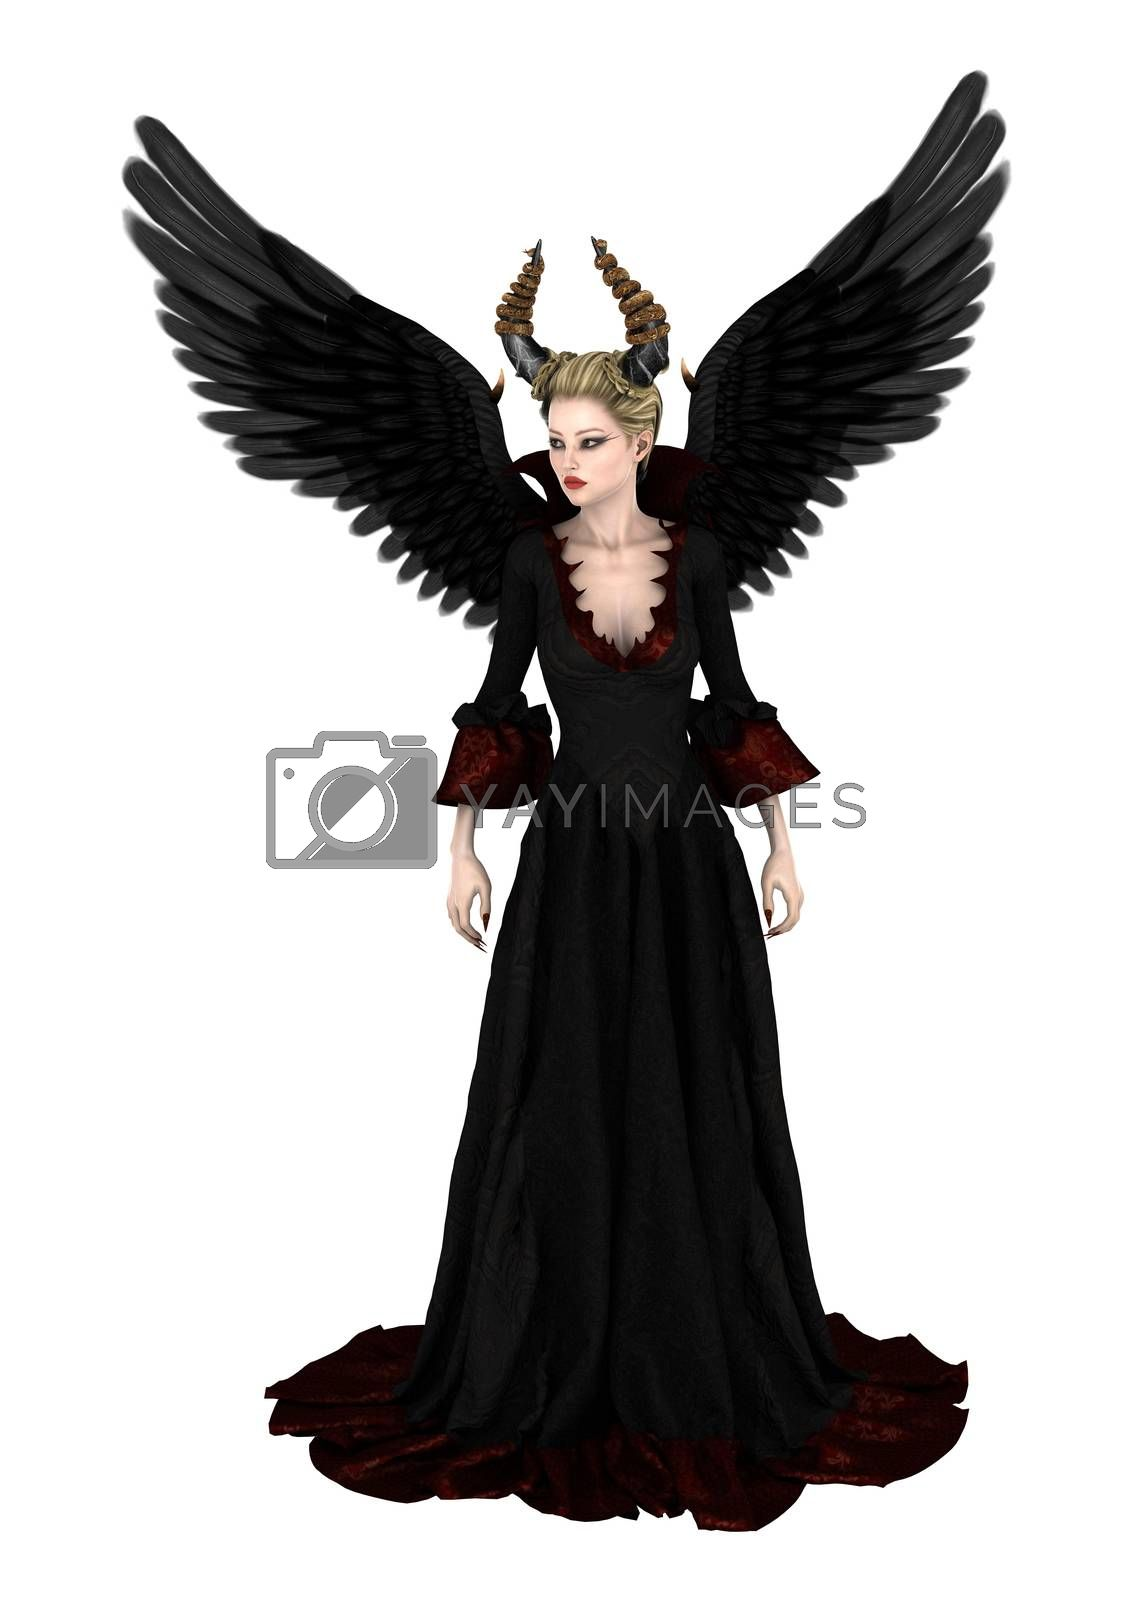 3D digital render of an evil queen isolated on white background